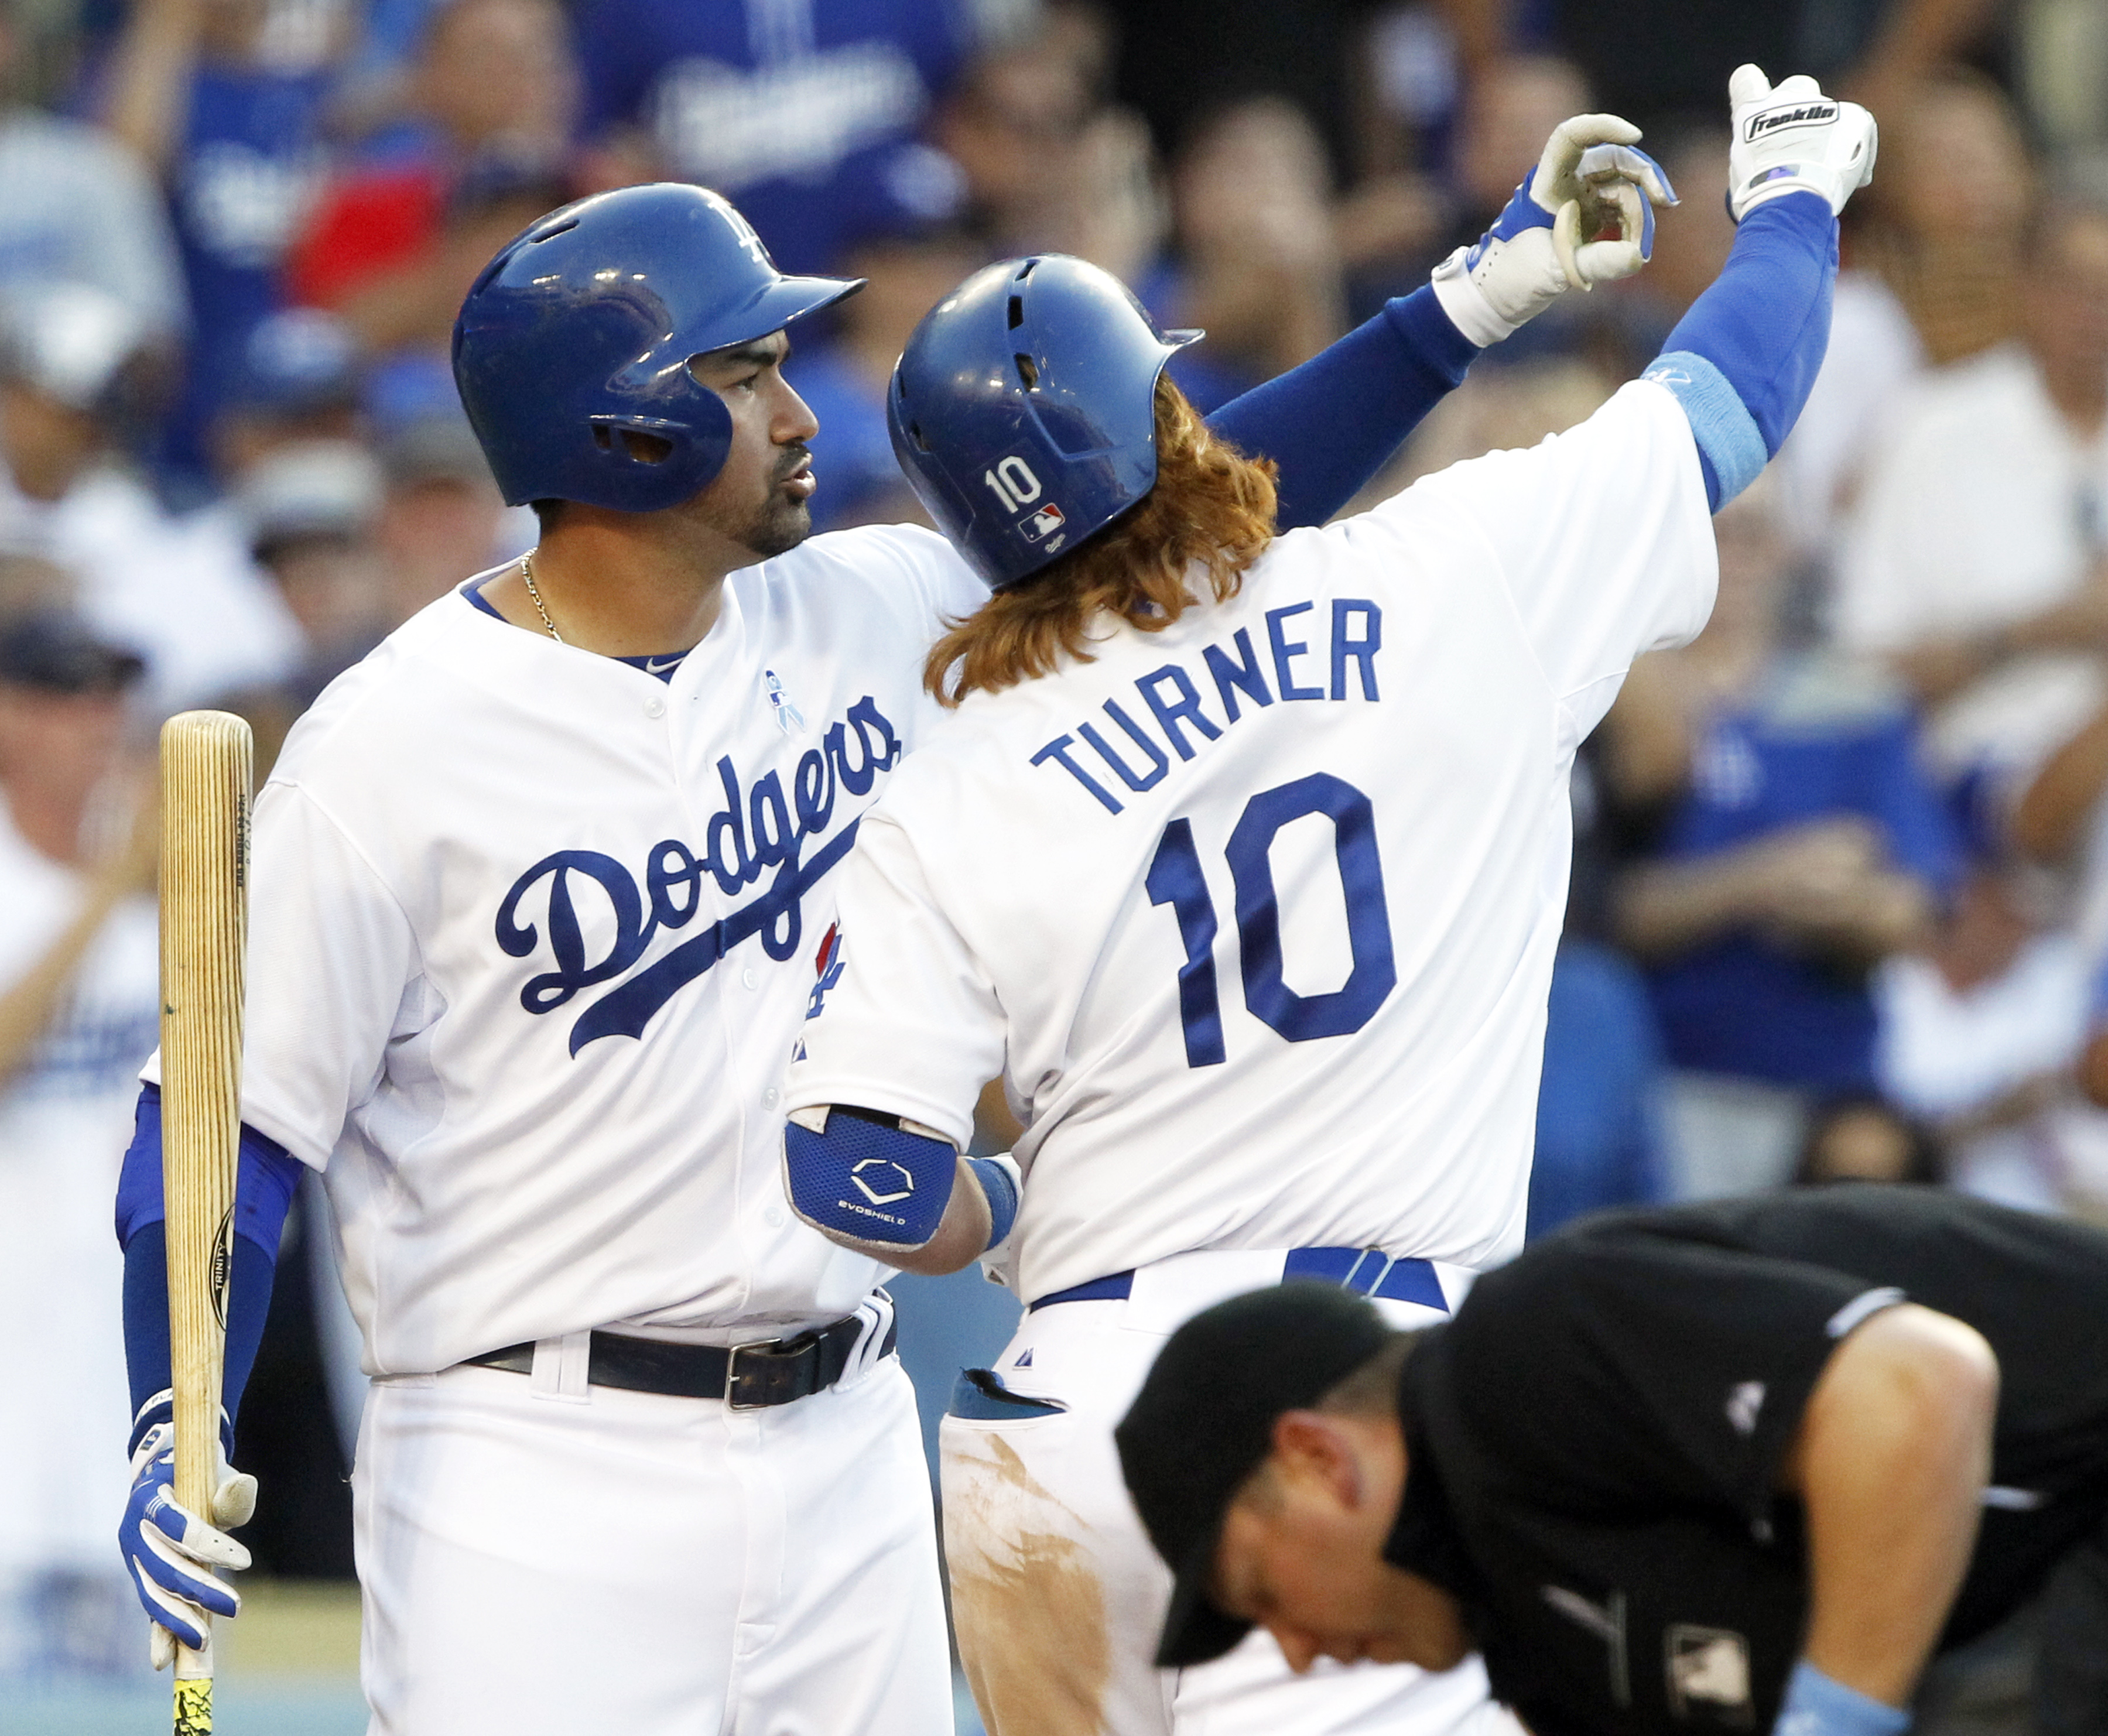 Los Angeles Dodgers' Adrian Gonzalez, left, takes a pretend selfie with Justin Turner after Turner returns after hitting a two-run home run against the San Francisco Giants during the fifth inning of a baseball game in Los Angeles, Sunday, June 21, 2015.